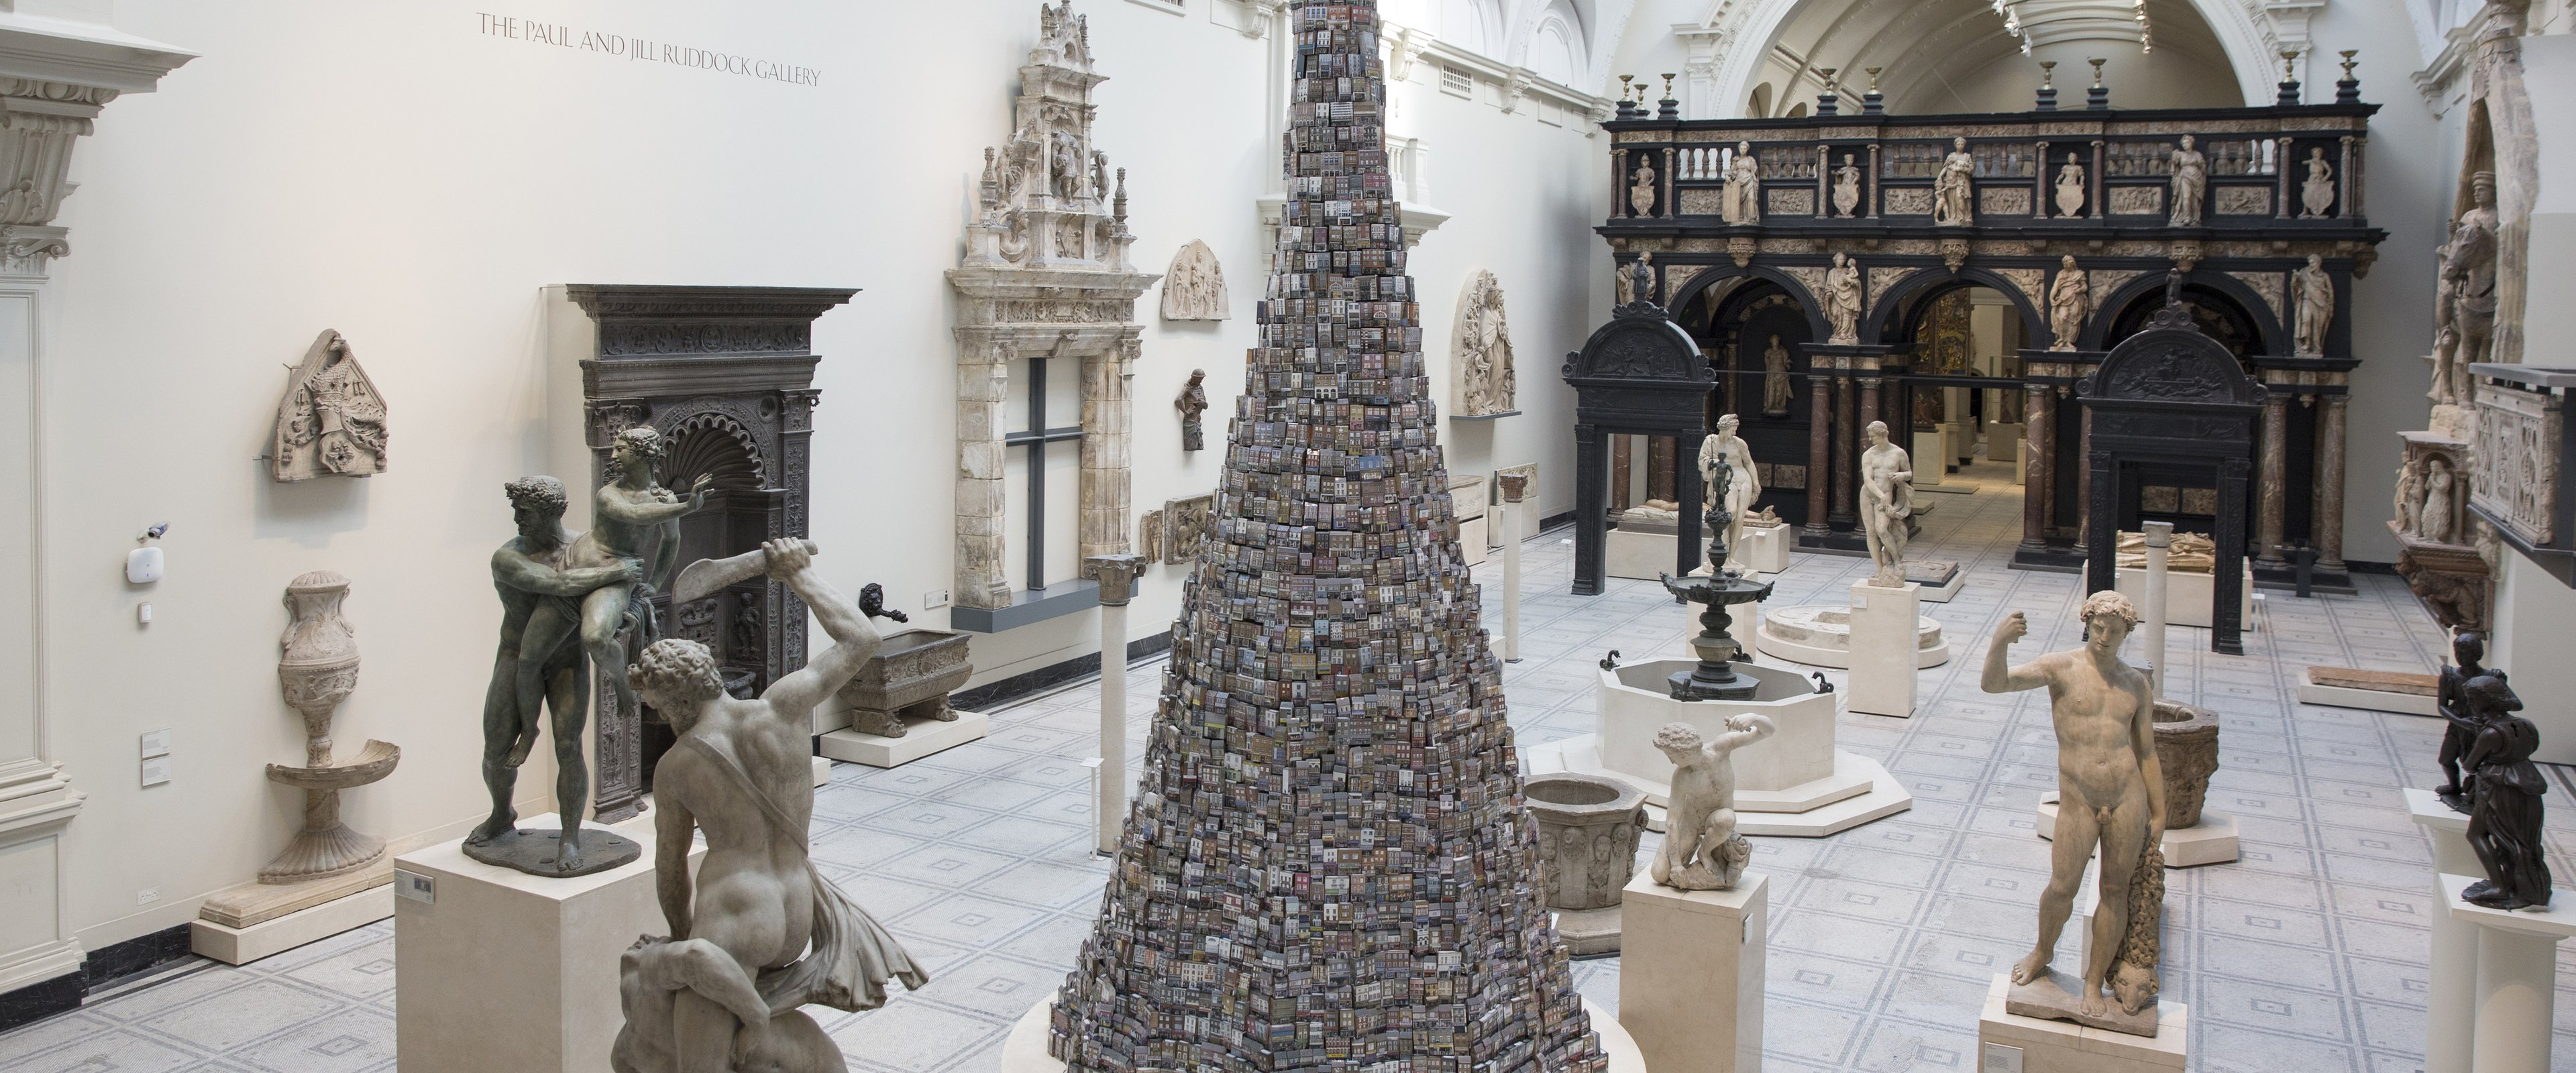 Tower of Babel with Barnaby Barford | 1882 Ltd.